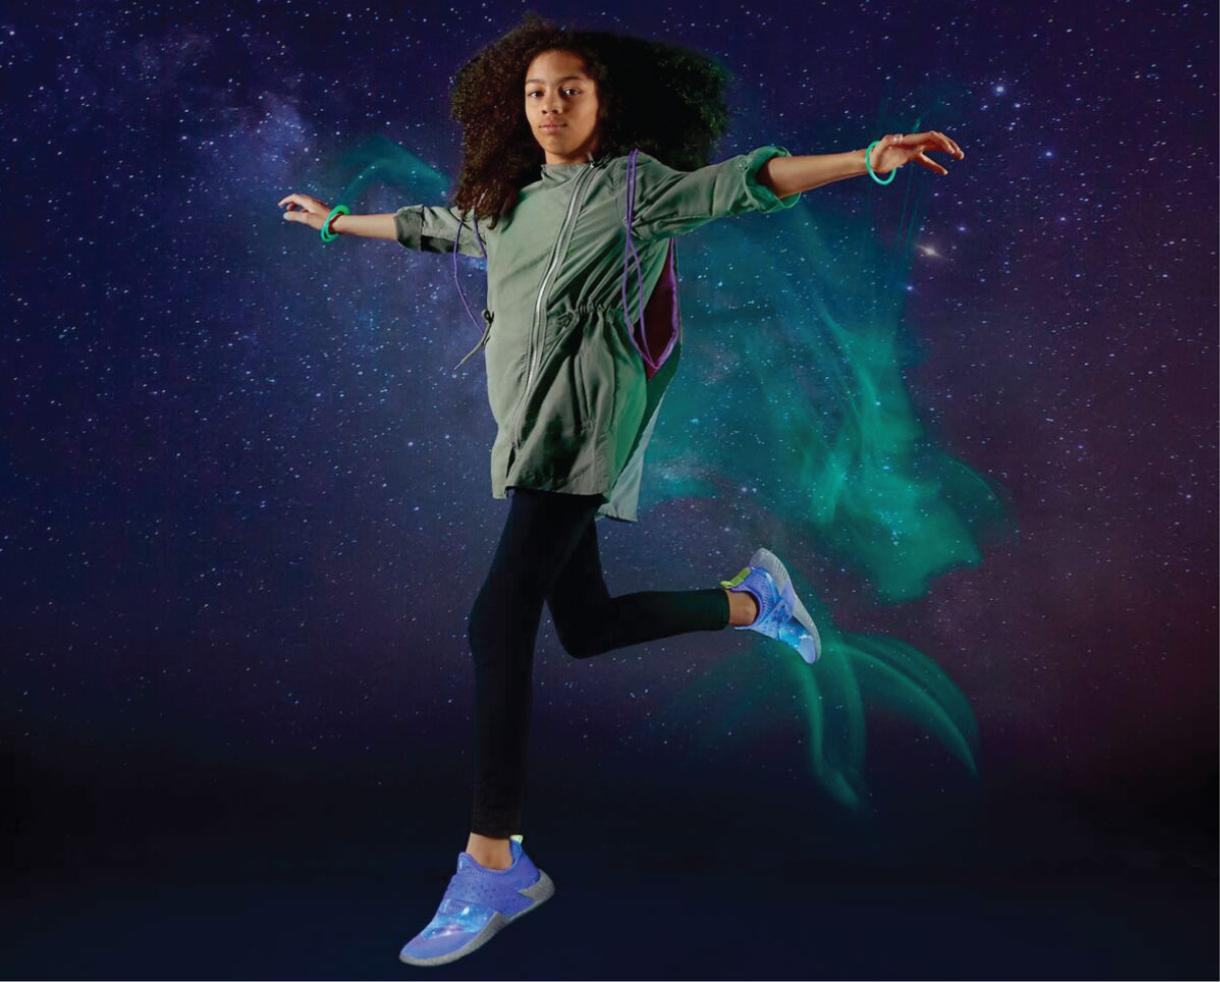 Super Heroic: Shoes Designed for Kids. Built for Play.